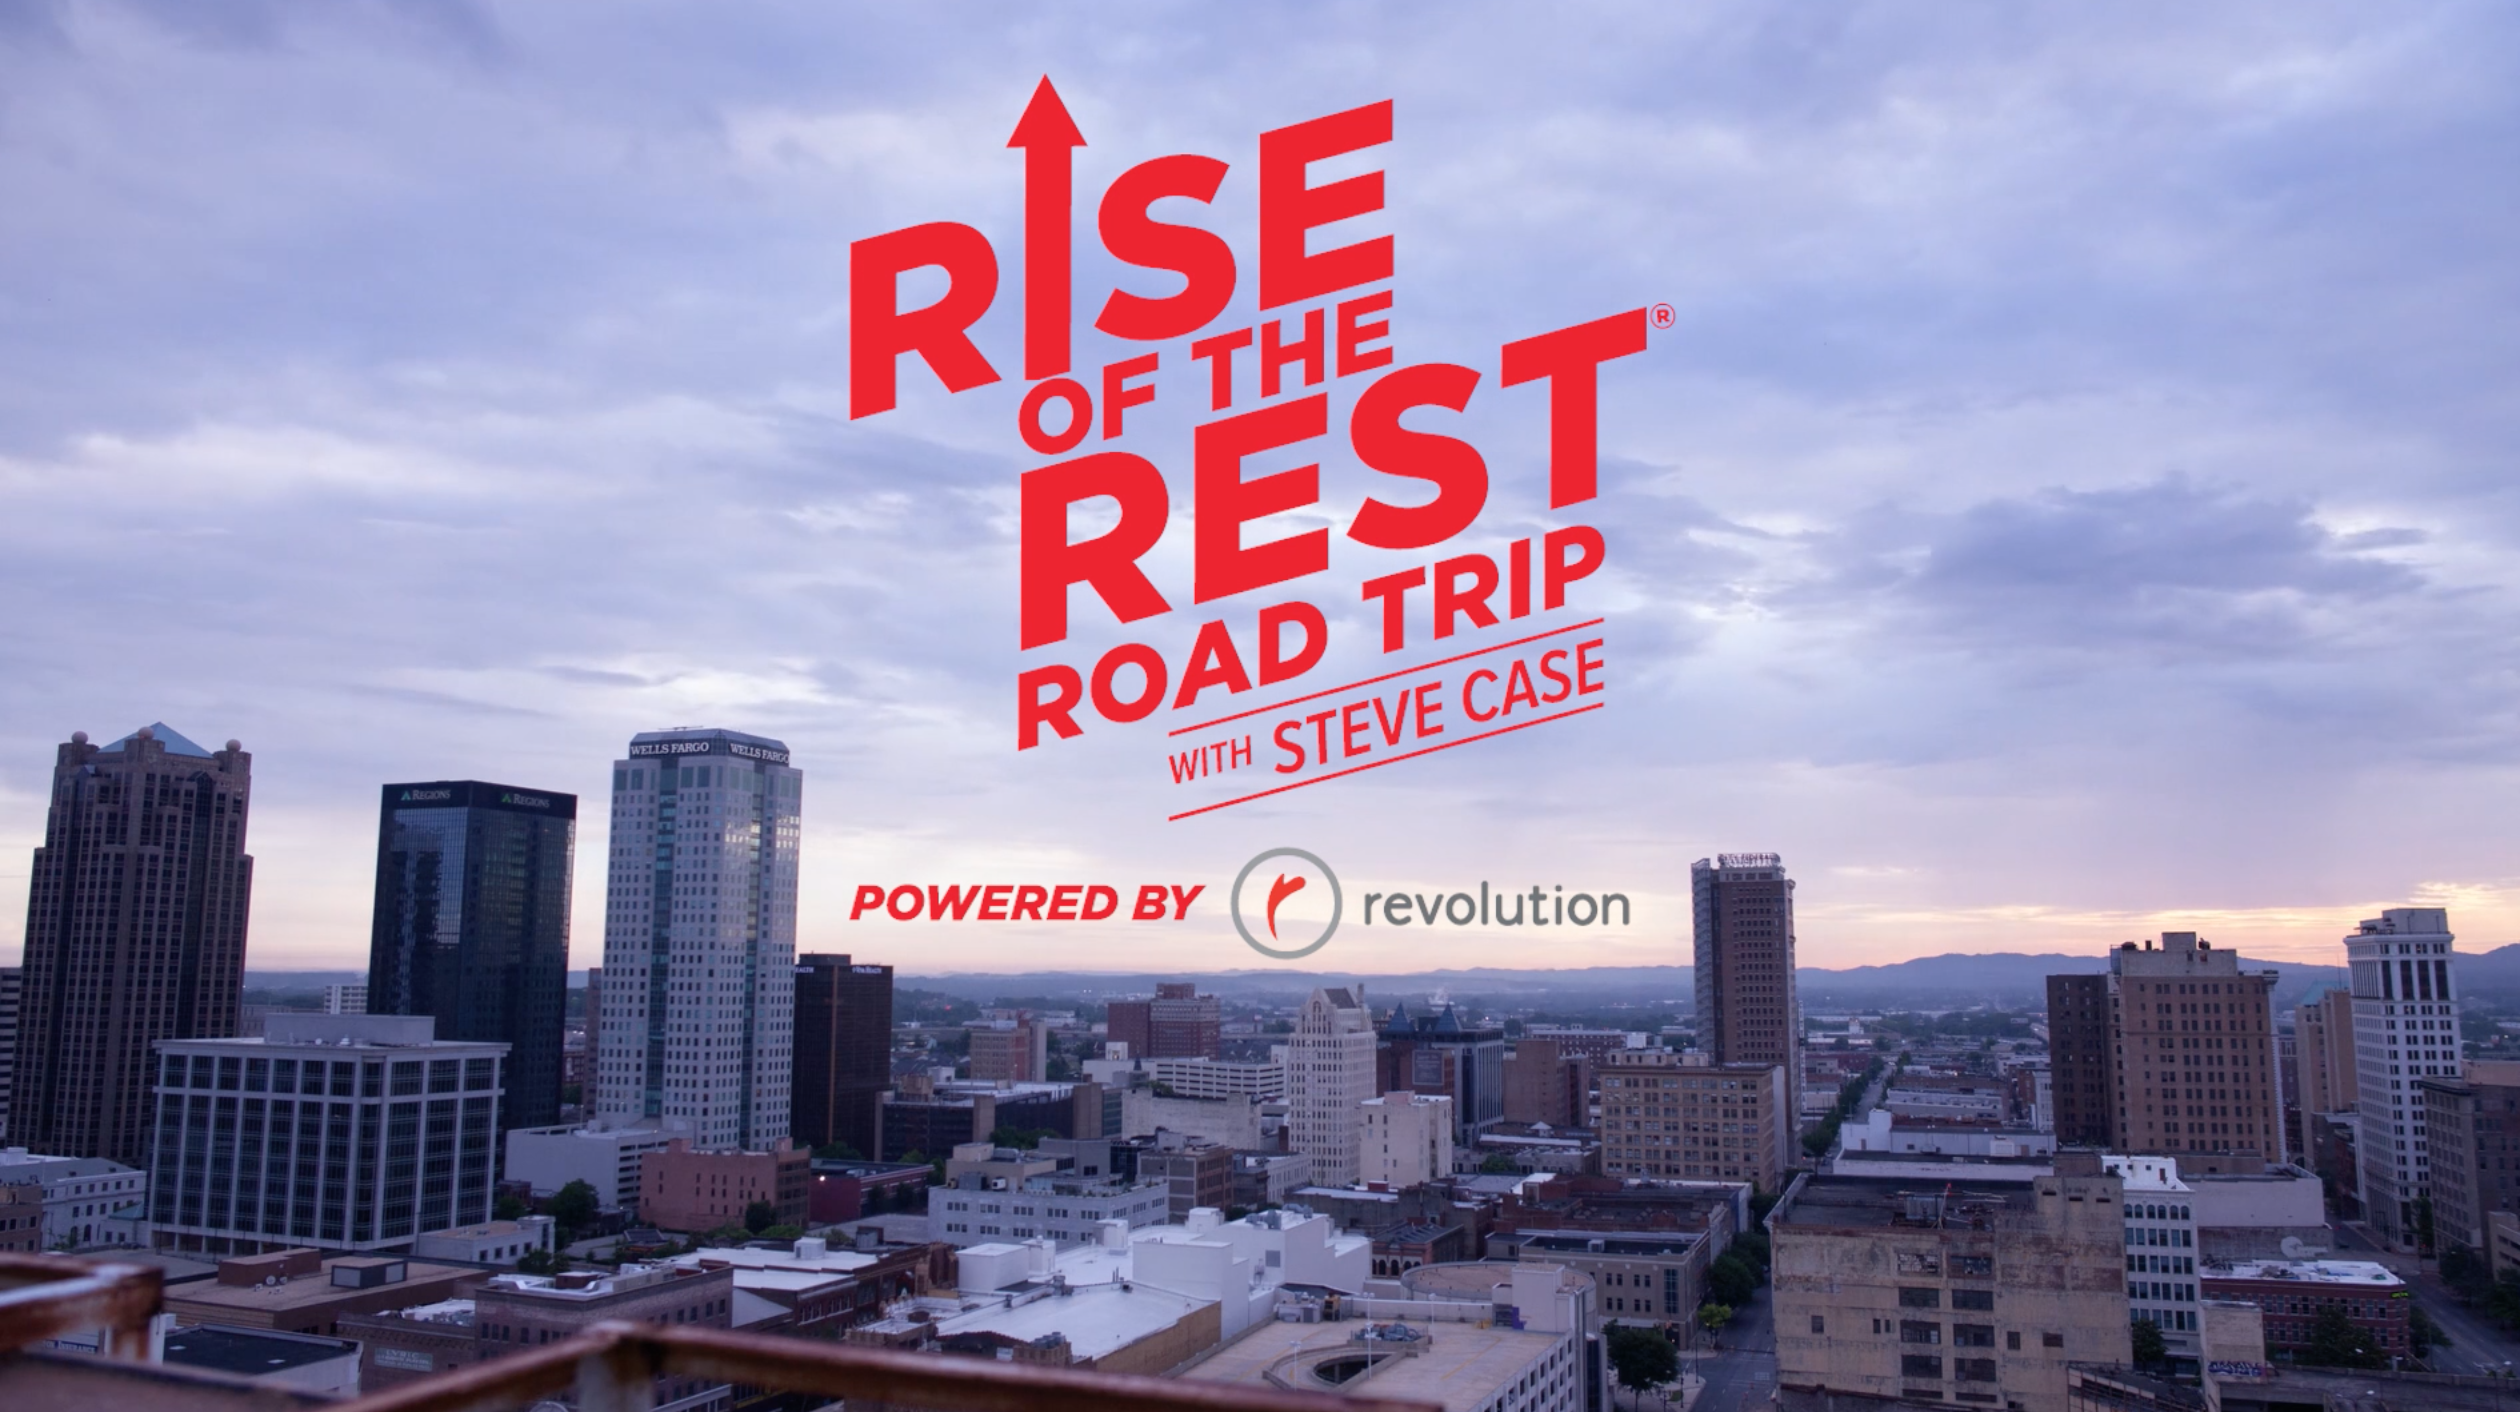 """Rise of the Rest Tour highlights Birmingham's """"New Momentum"""""""